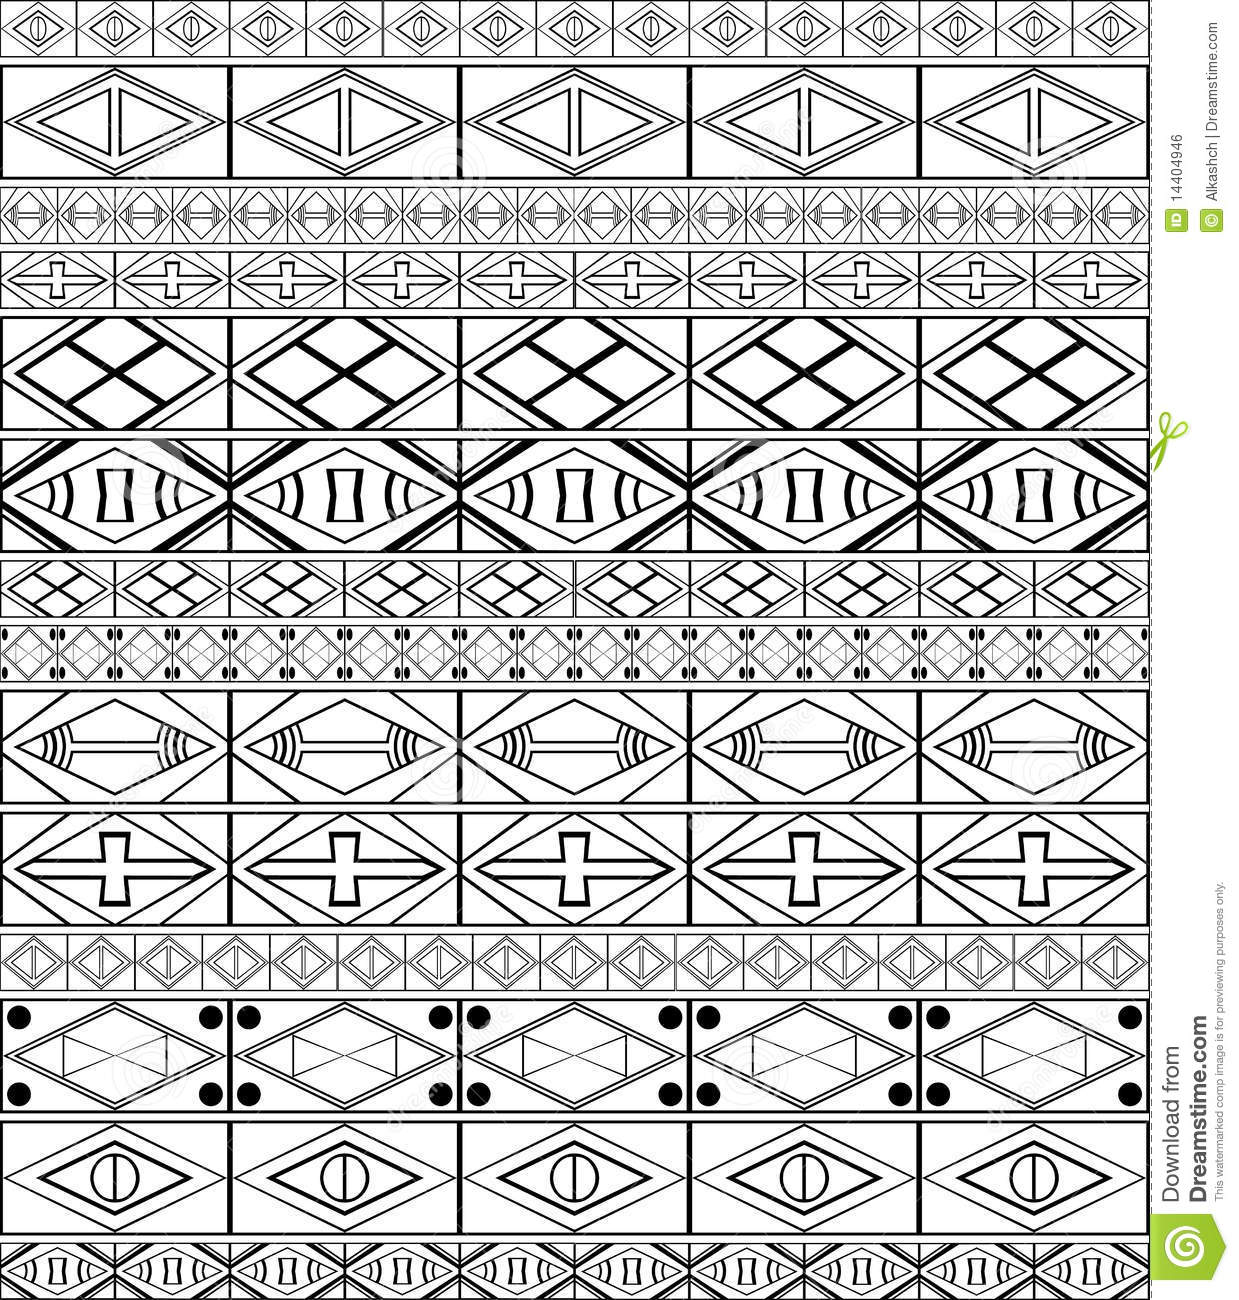 African Tribal Patterns Black And White Images & Pictures - Becuo